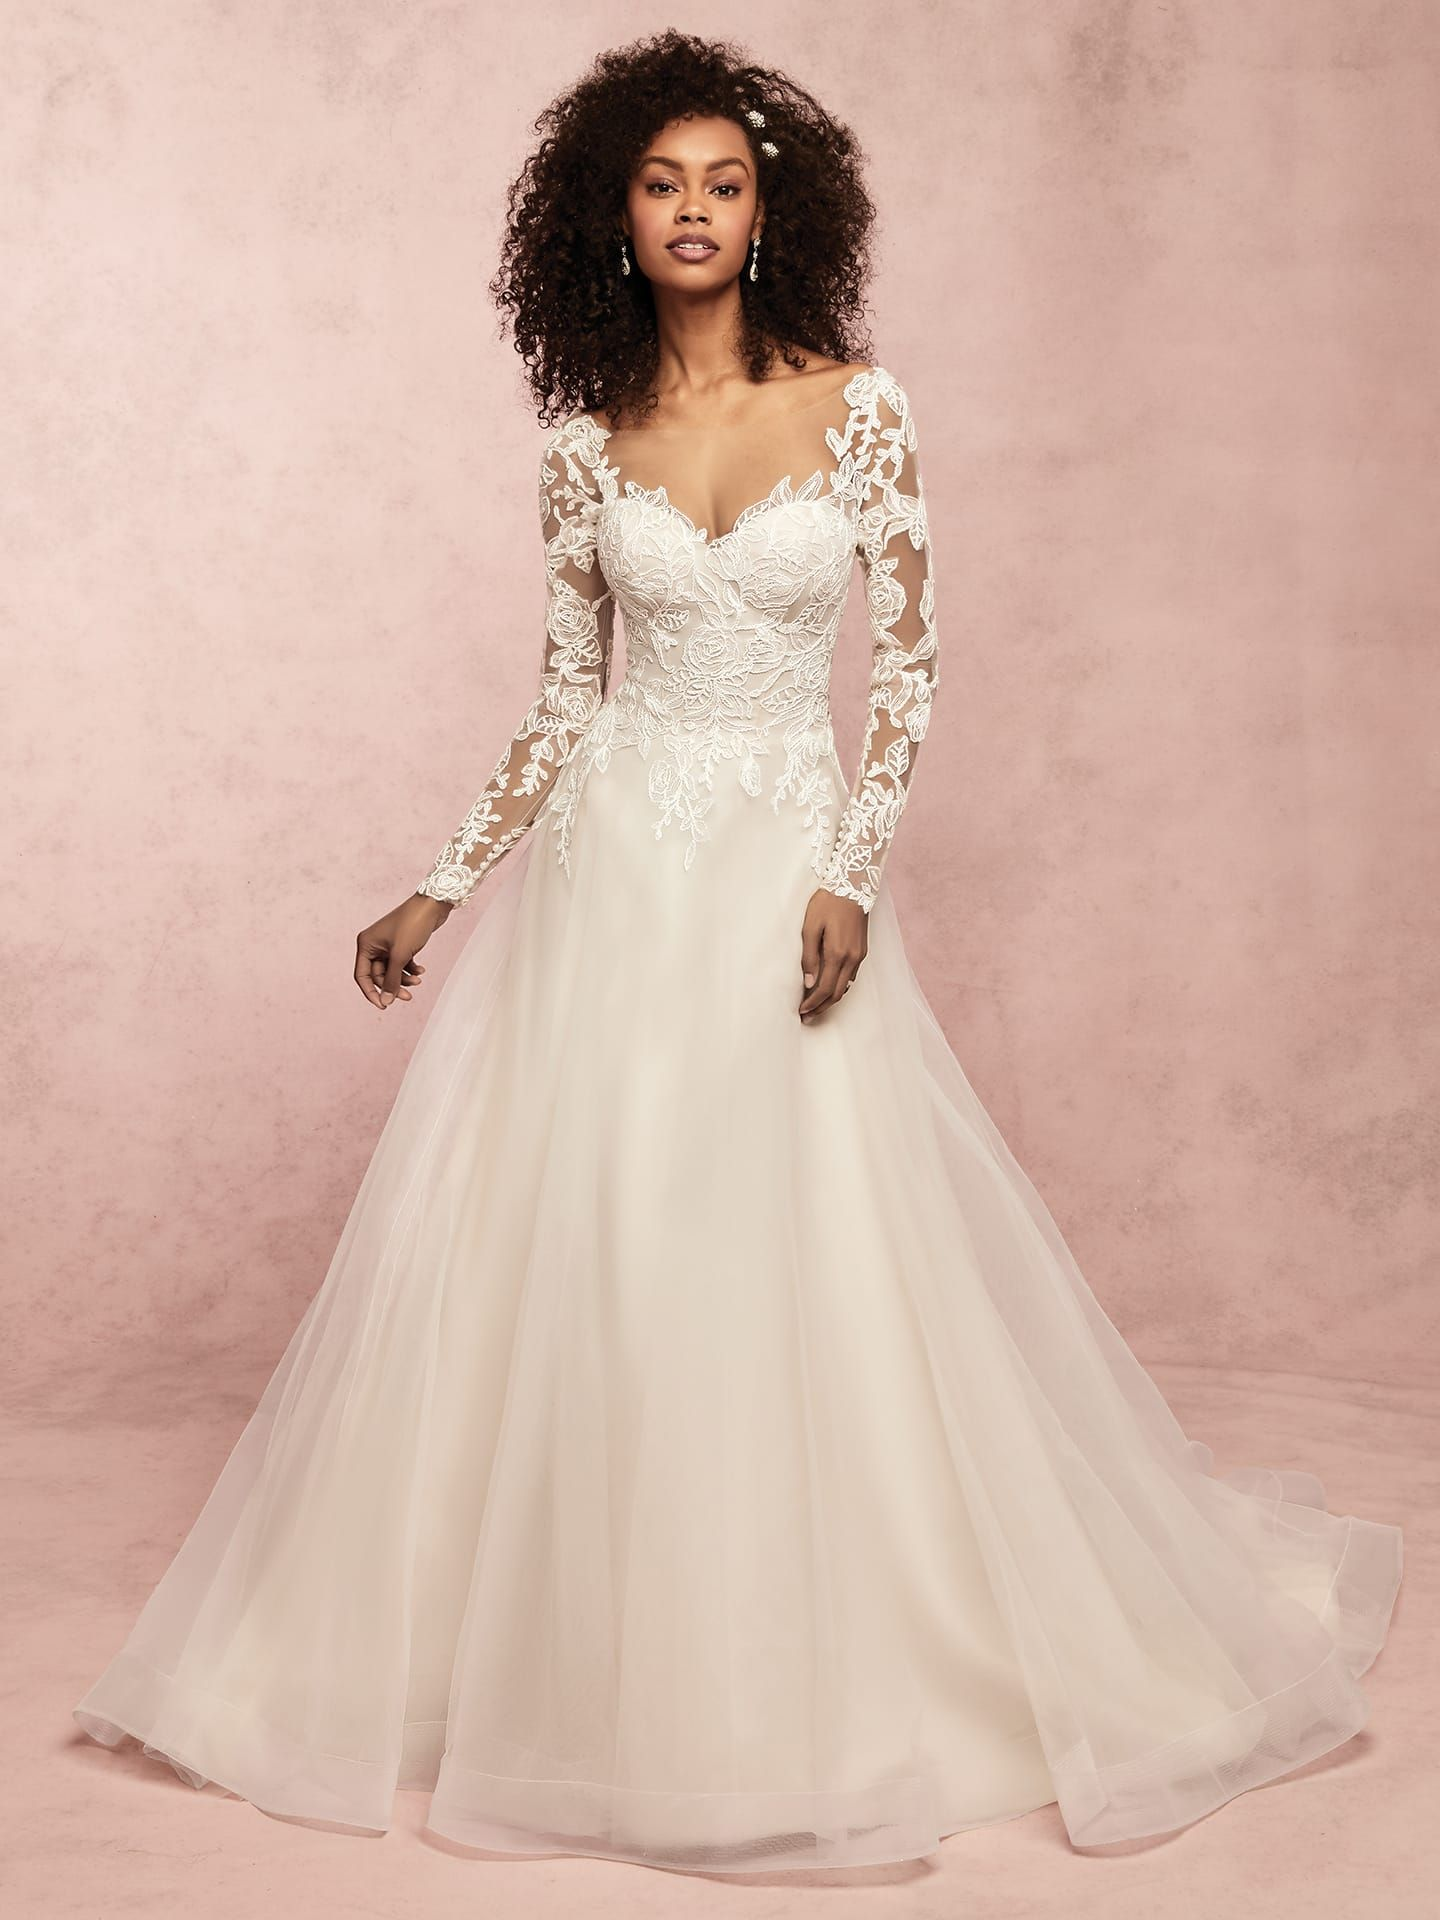 Unique floral lace motifs dance over the bodice of this